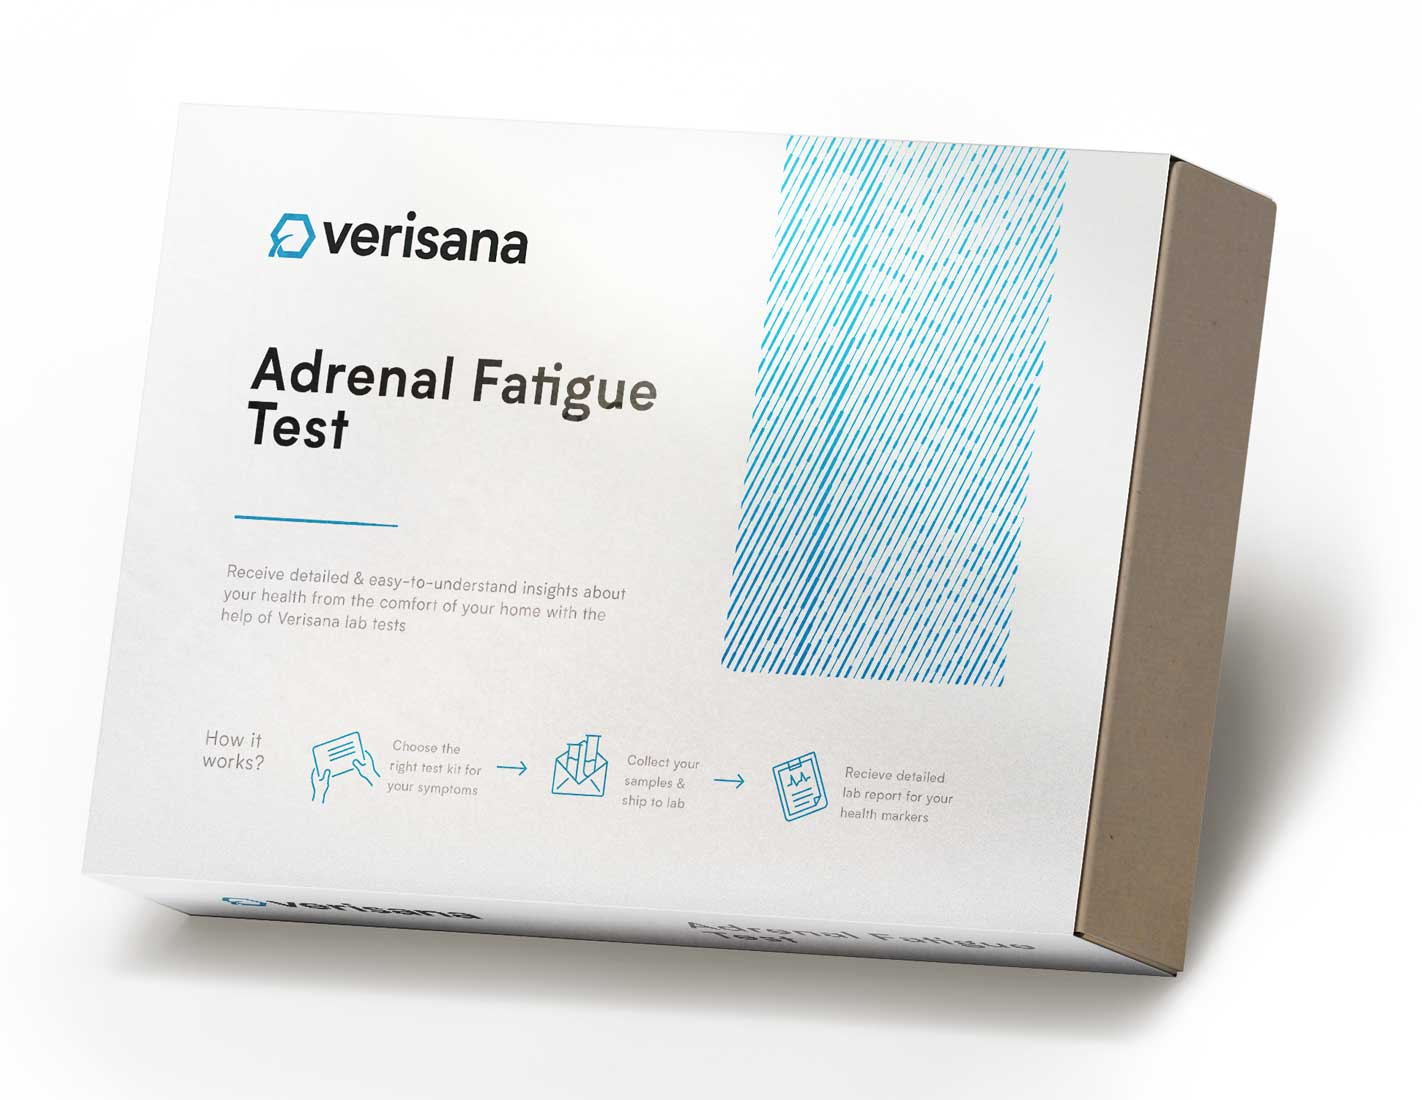 Adrenal-Fatigue-Test-Testkit